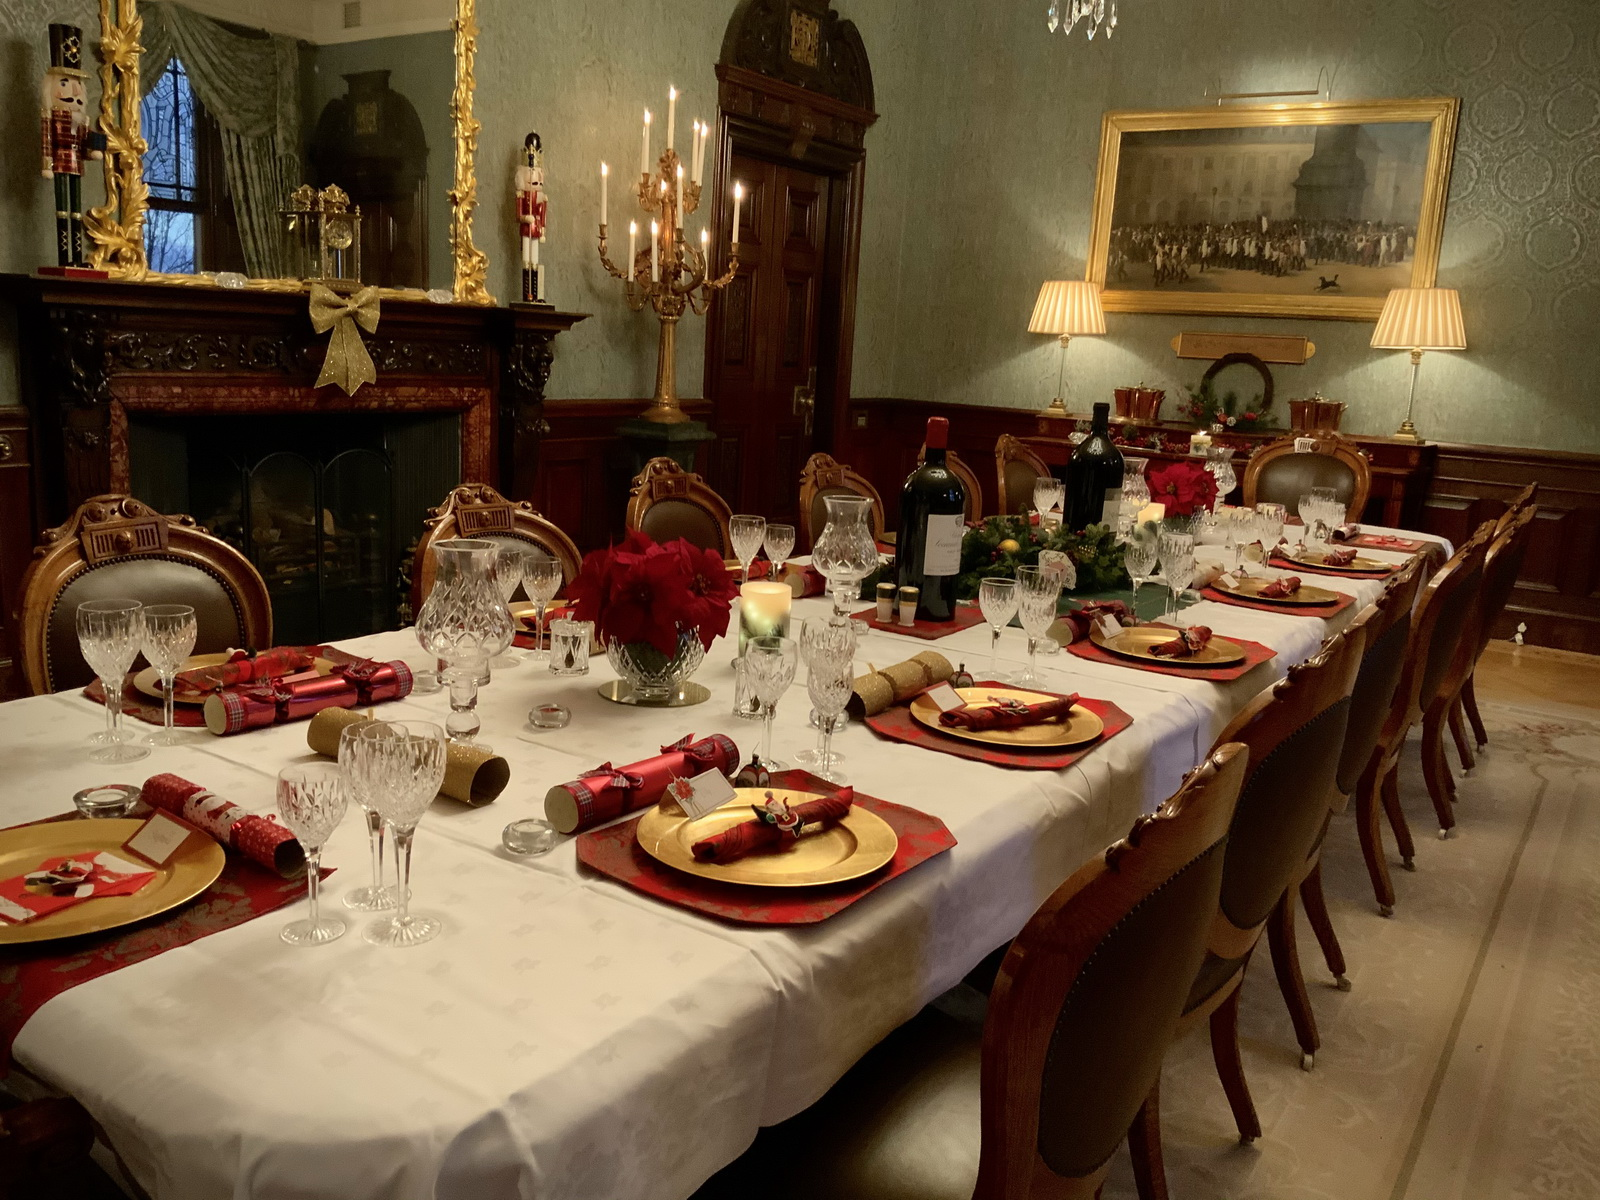 Auchterarder House, dining room set for Christmas